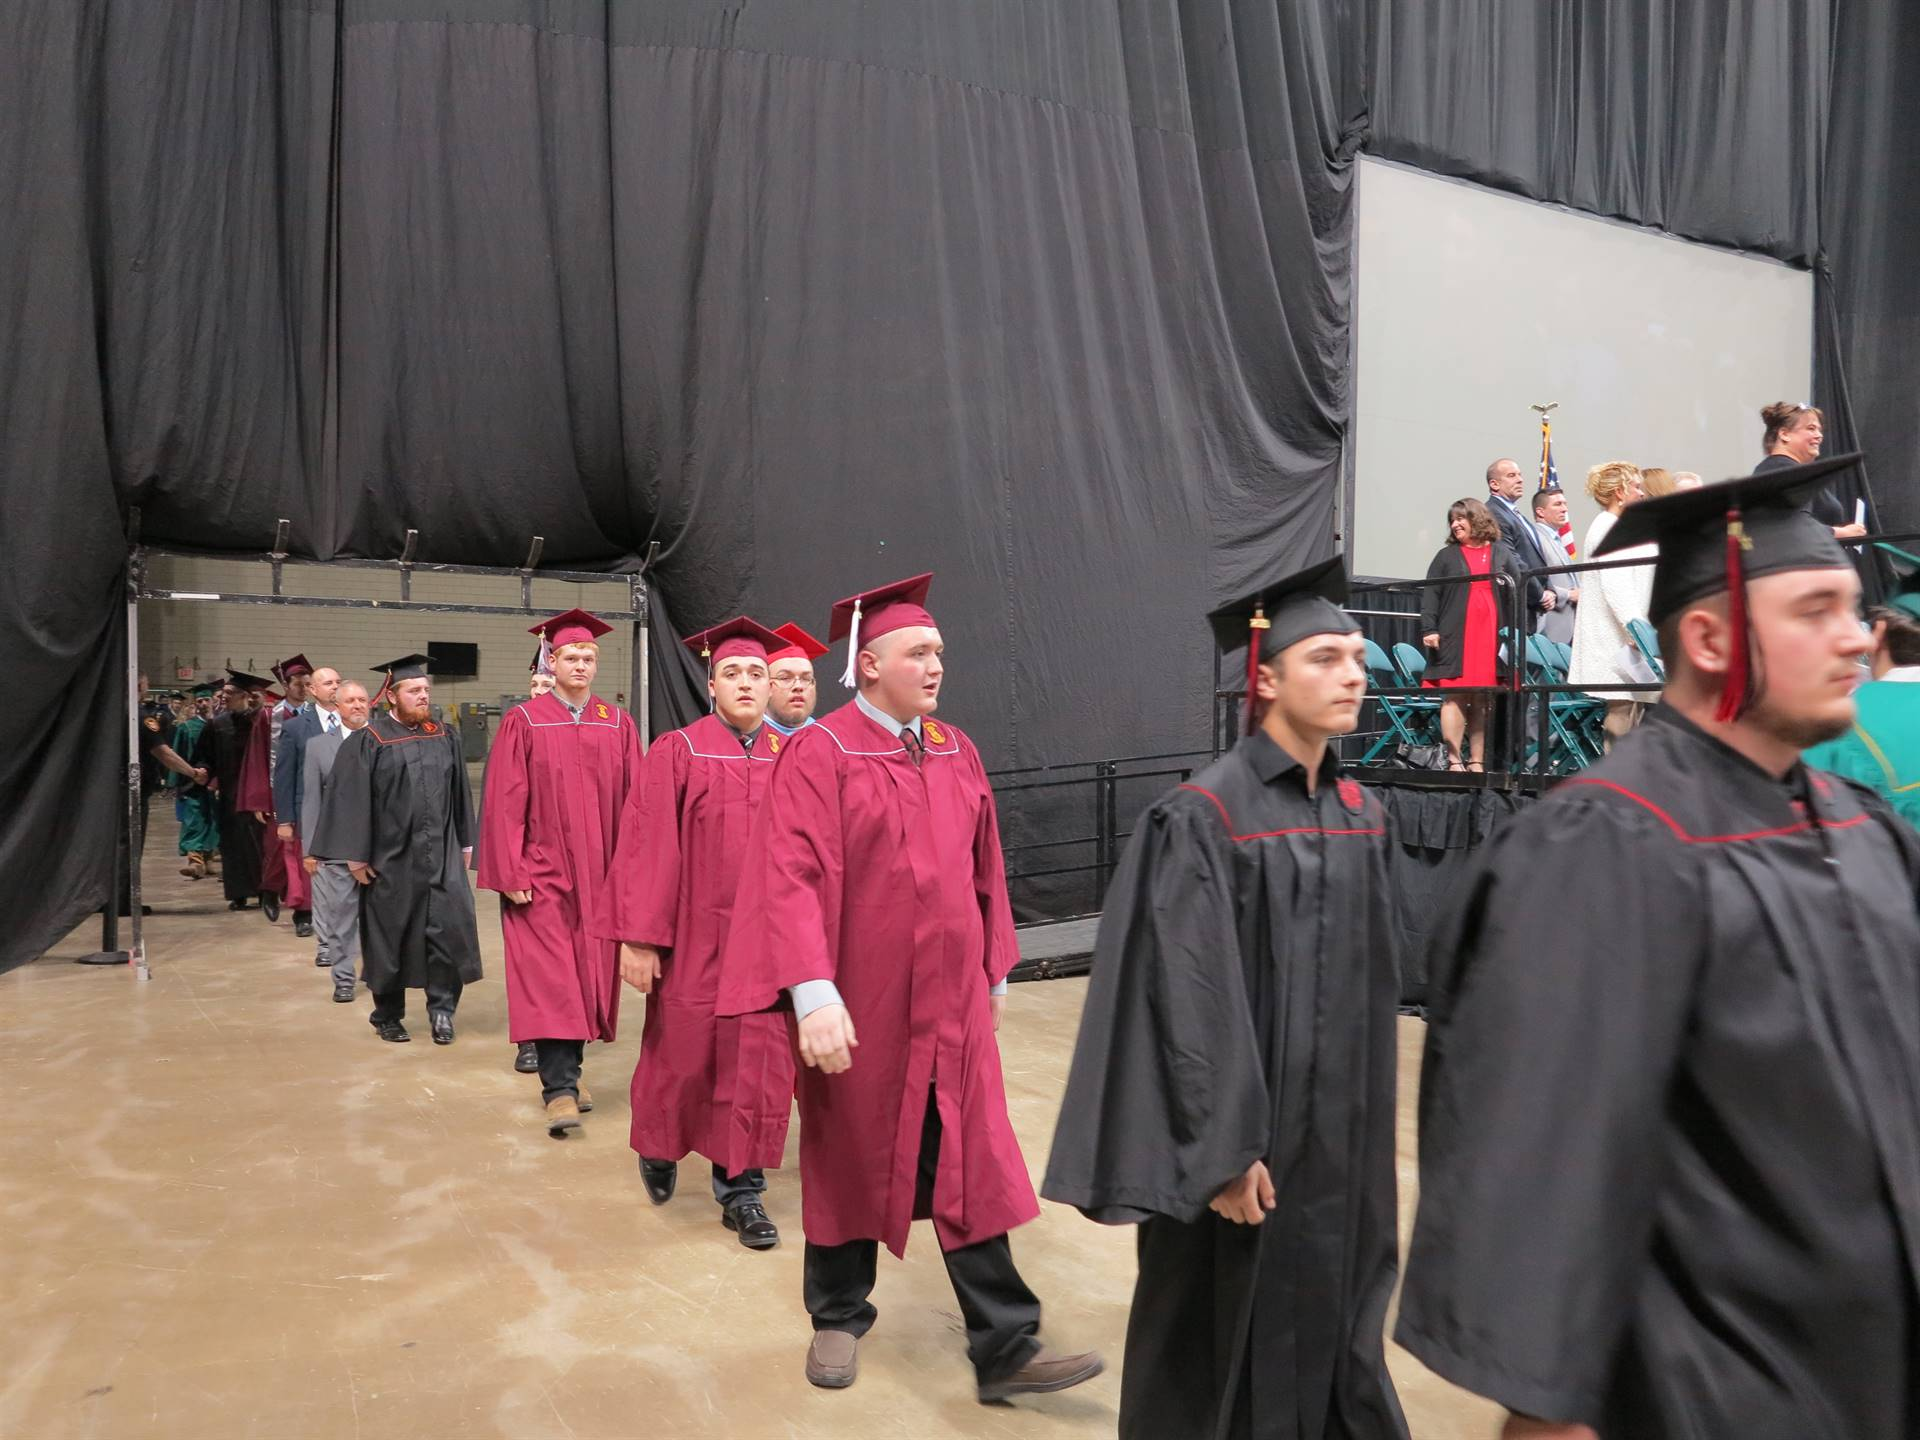 Students before the ceremony